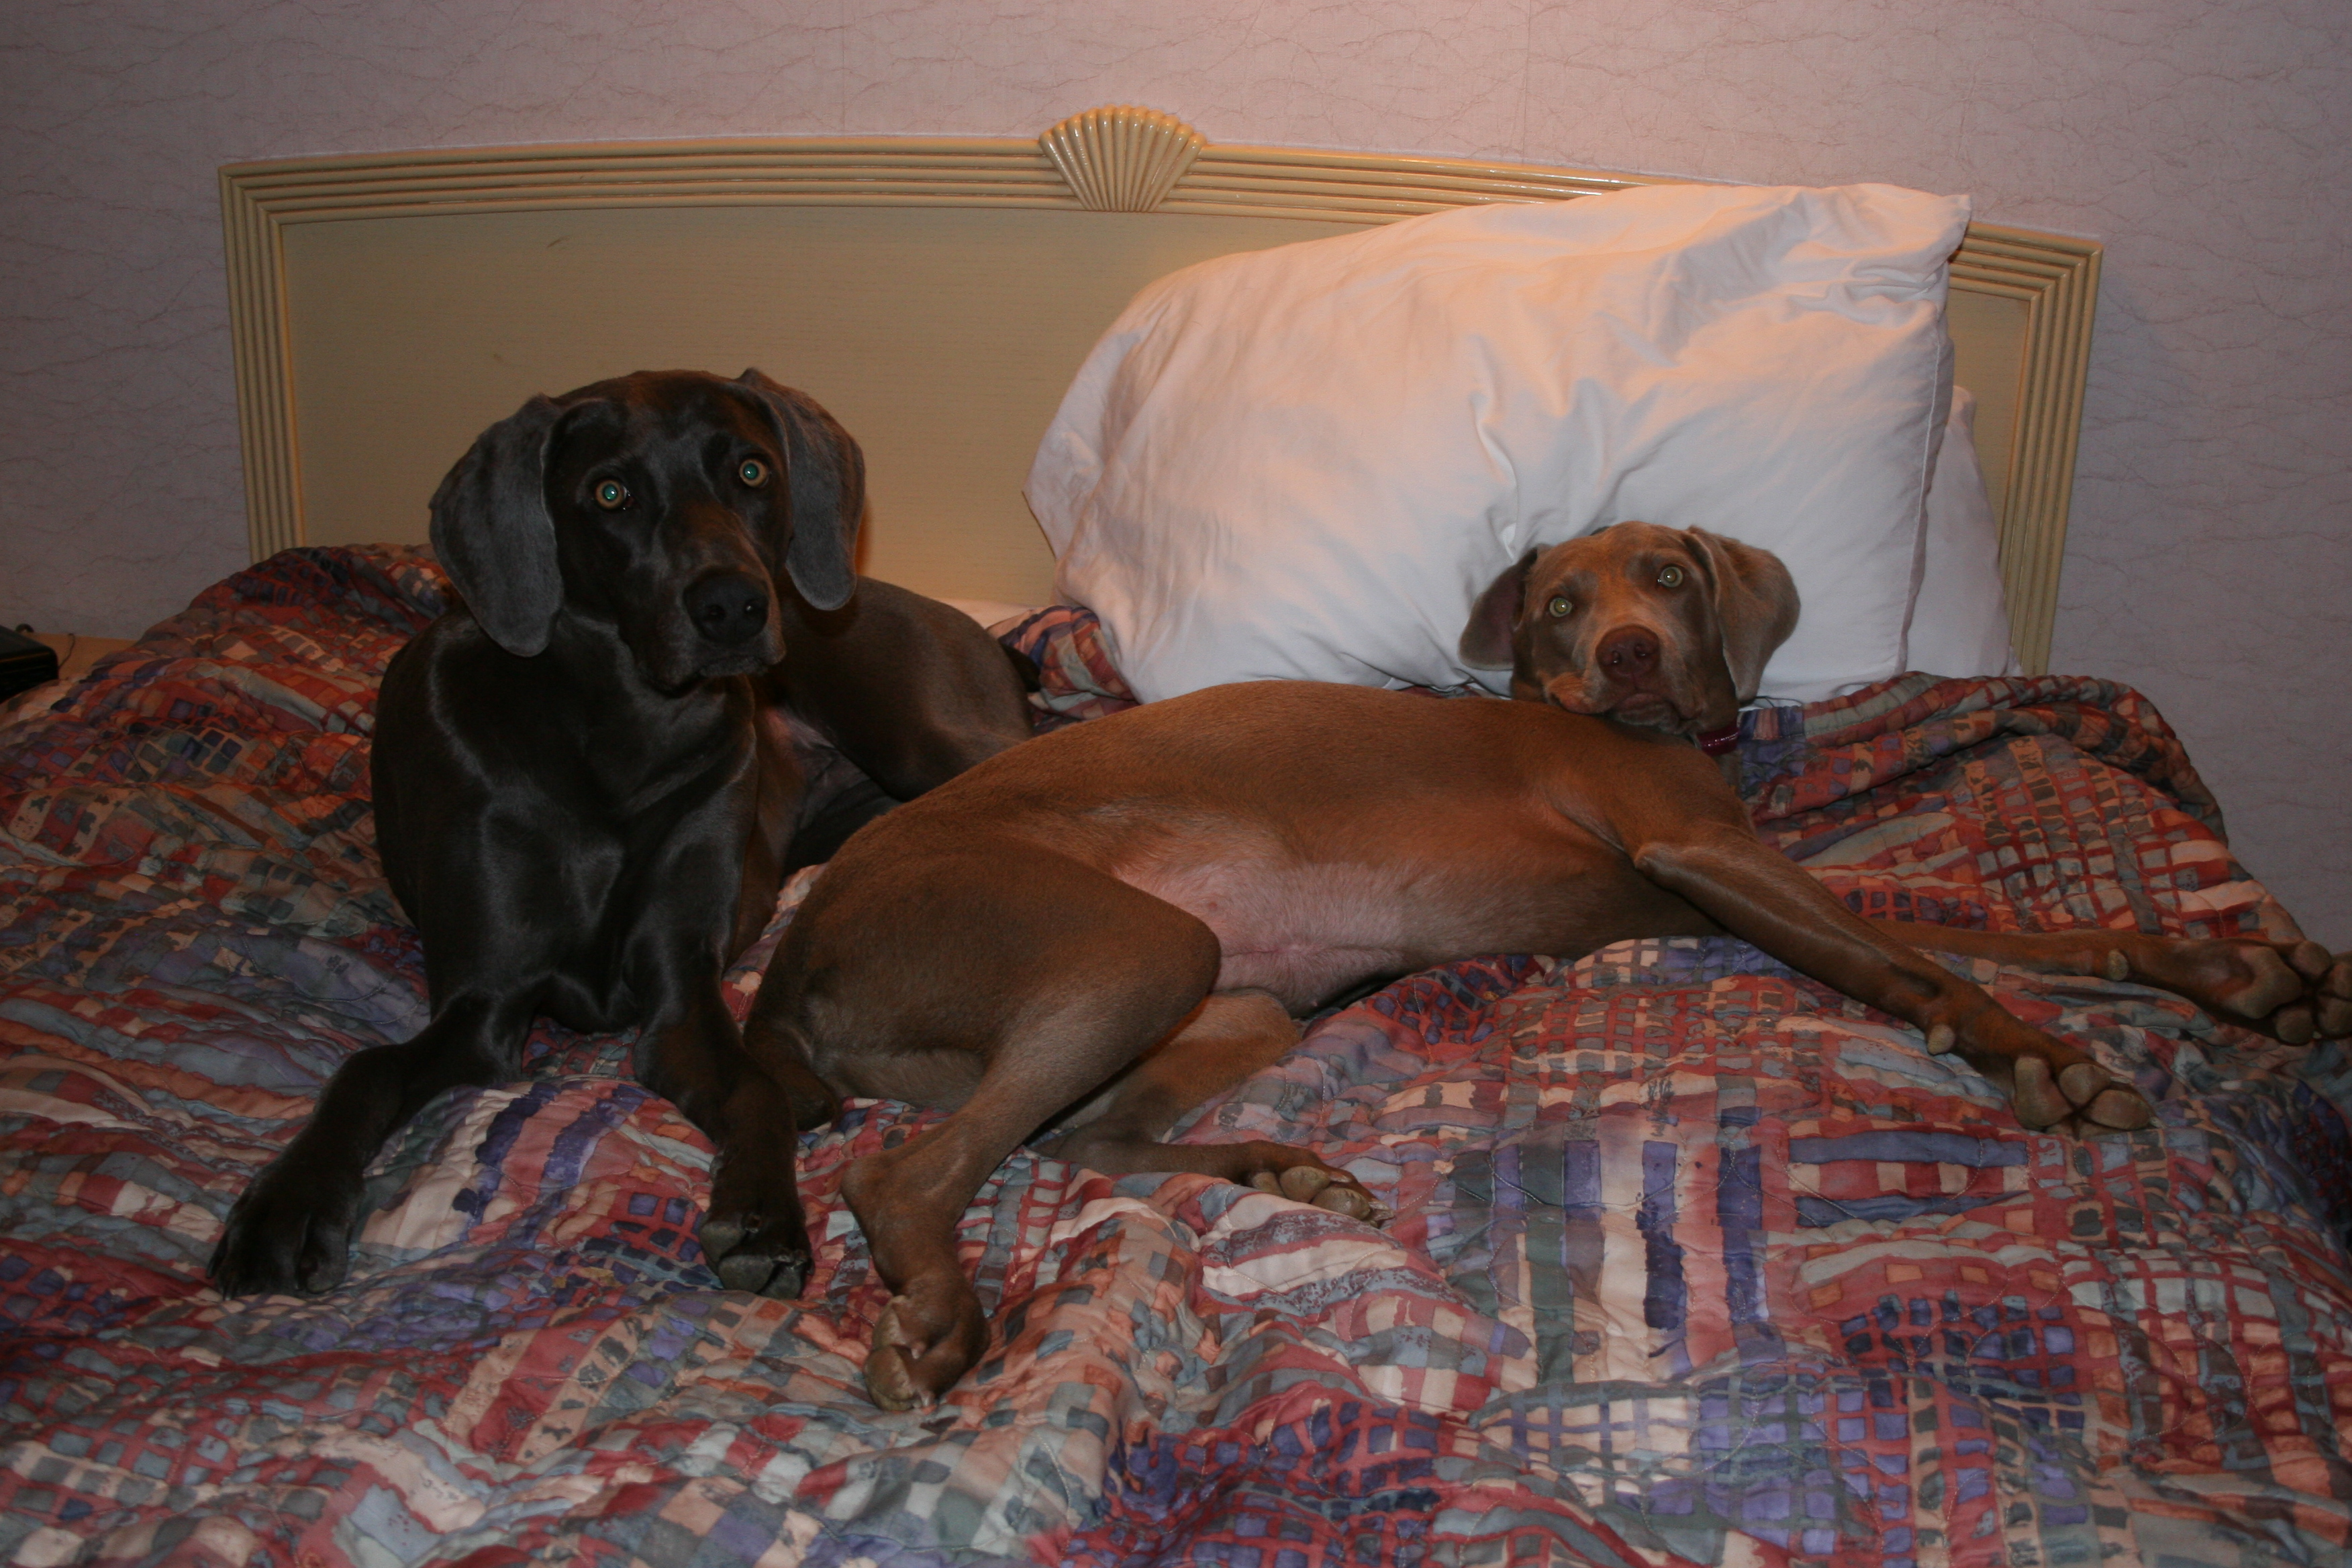 Bennett and Ruca enjoy the comforts